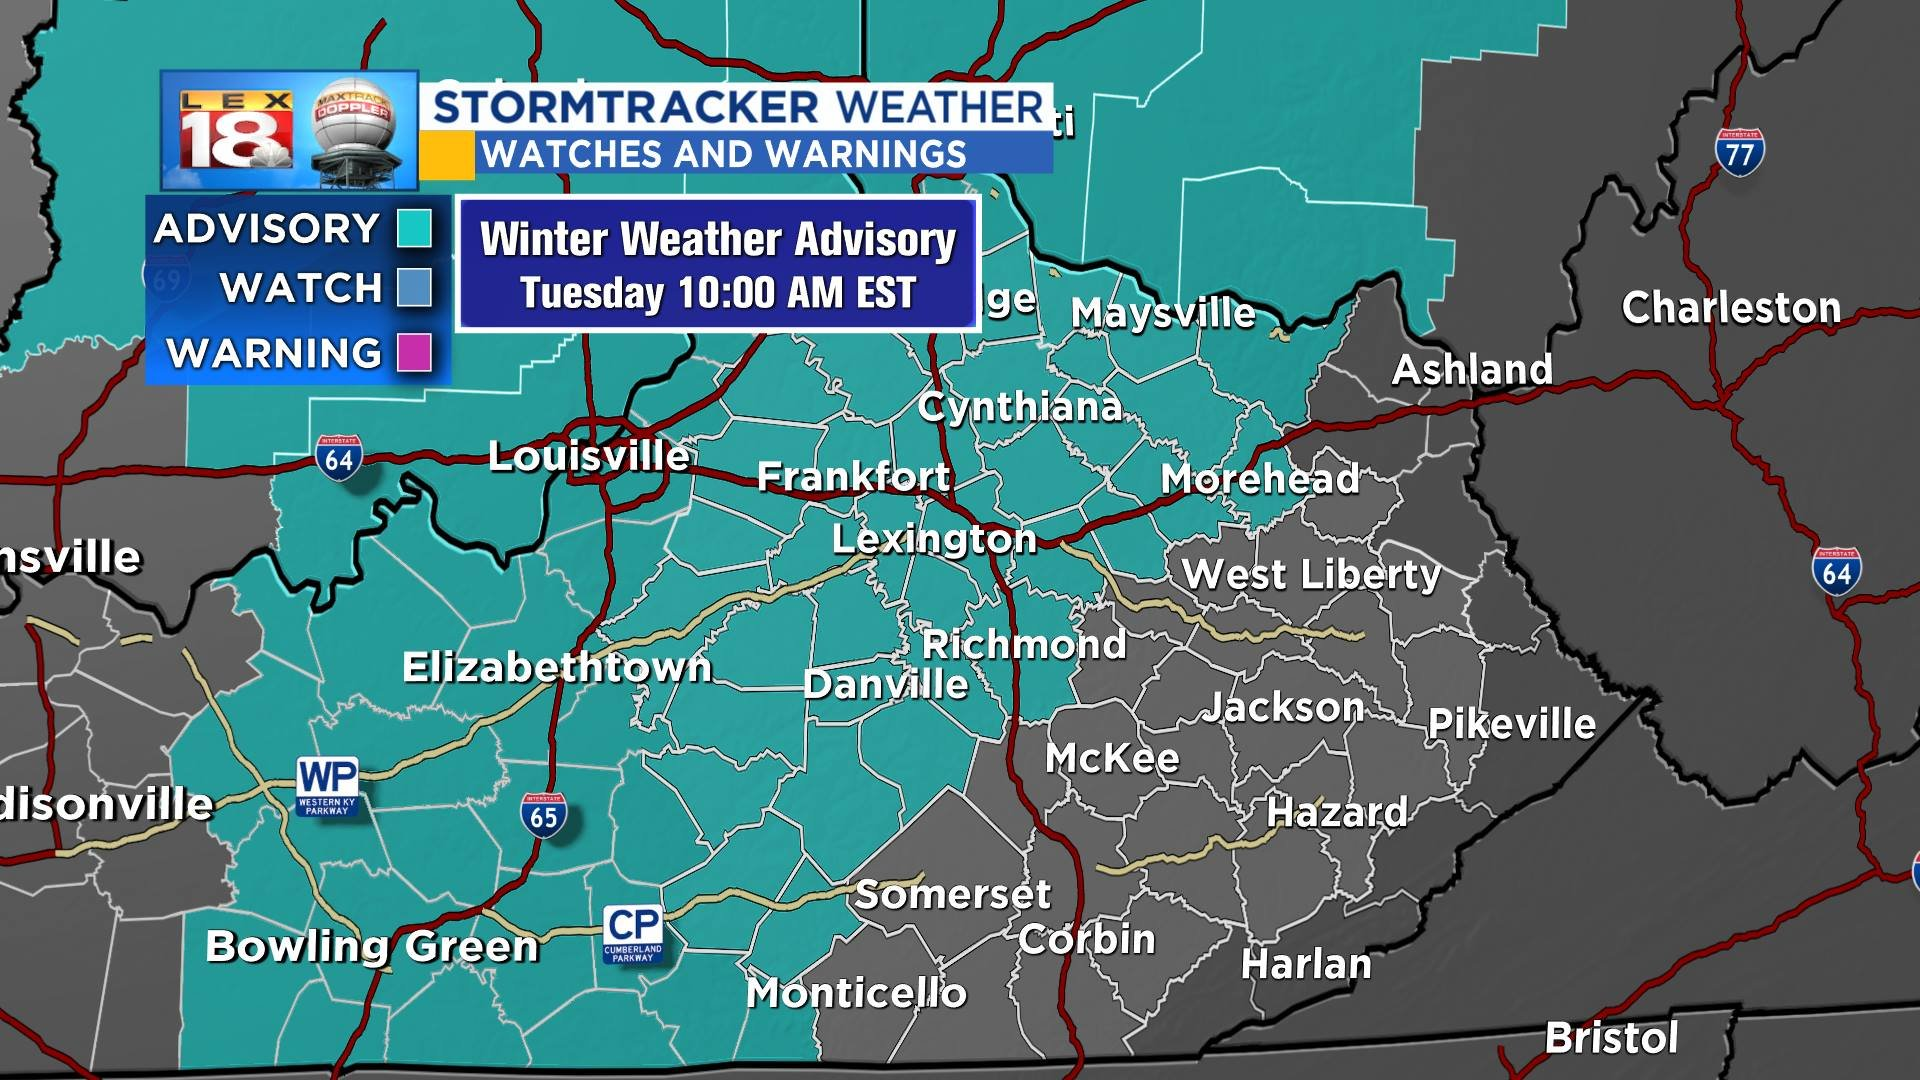 Charlotte has winter weather advisory in effect. When could snow start?